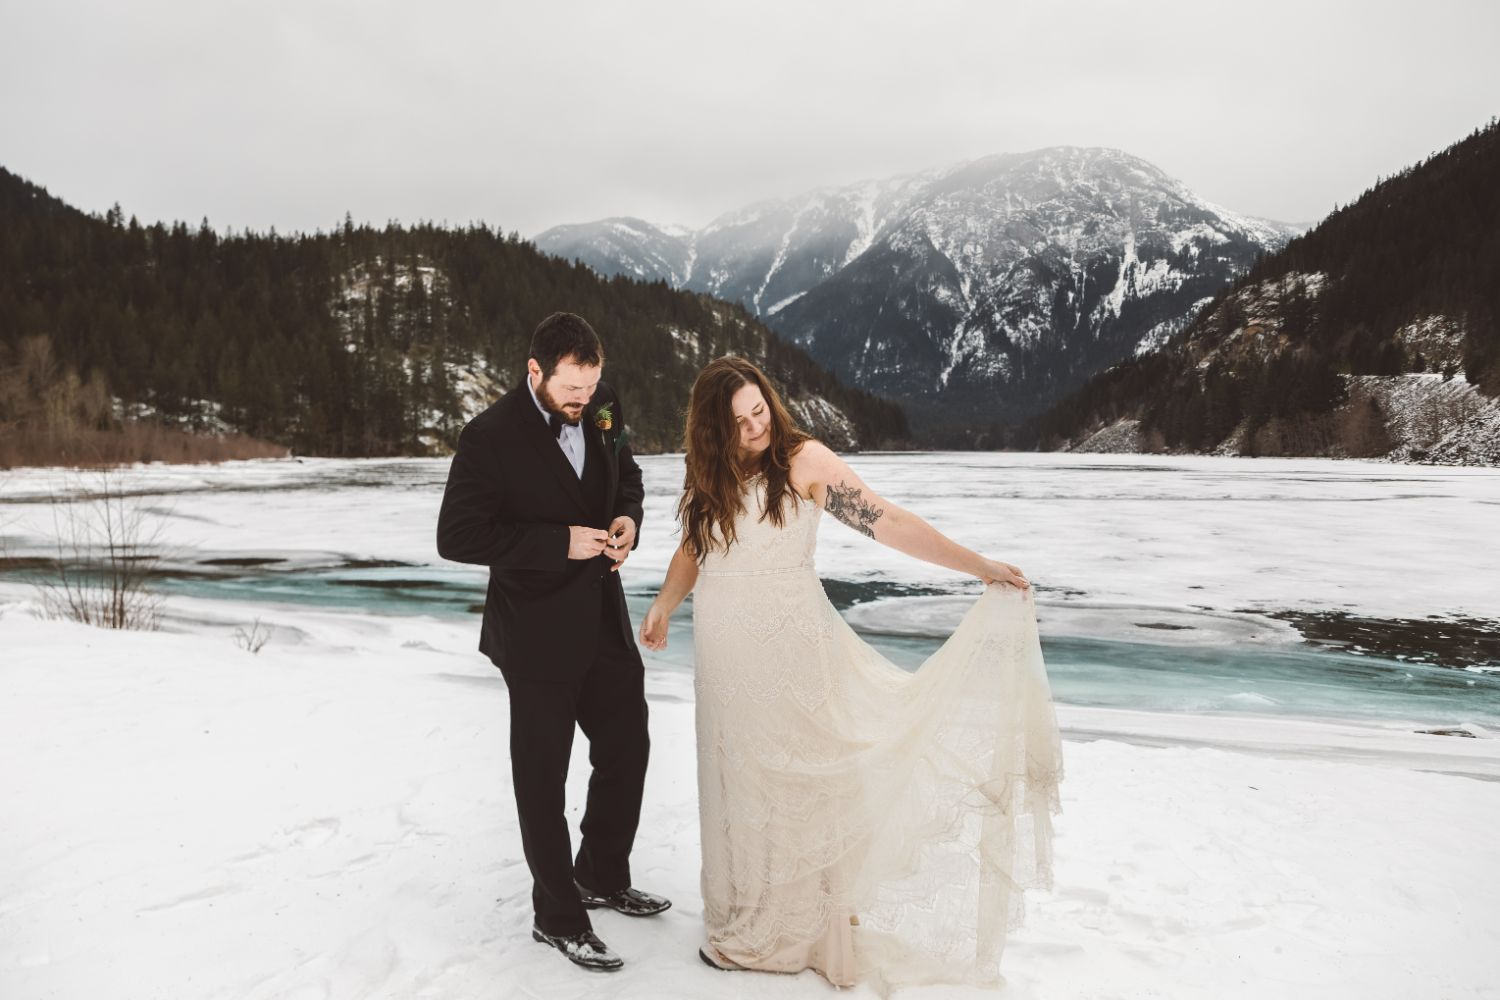 bride-groom-snowy-mountain-elopement